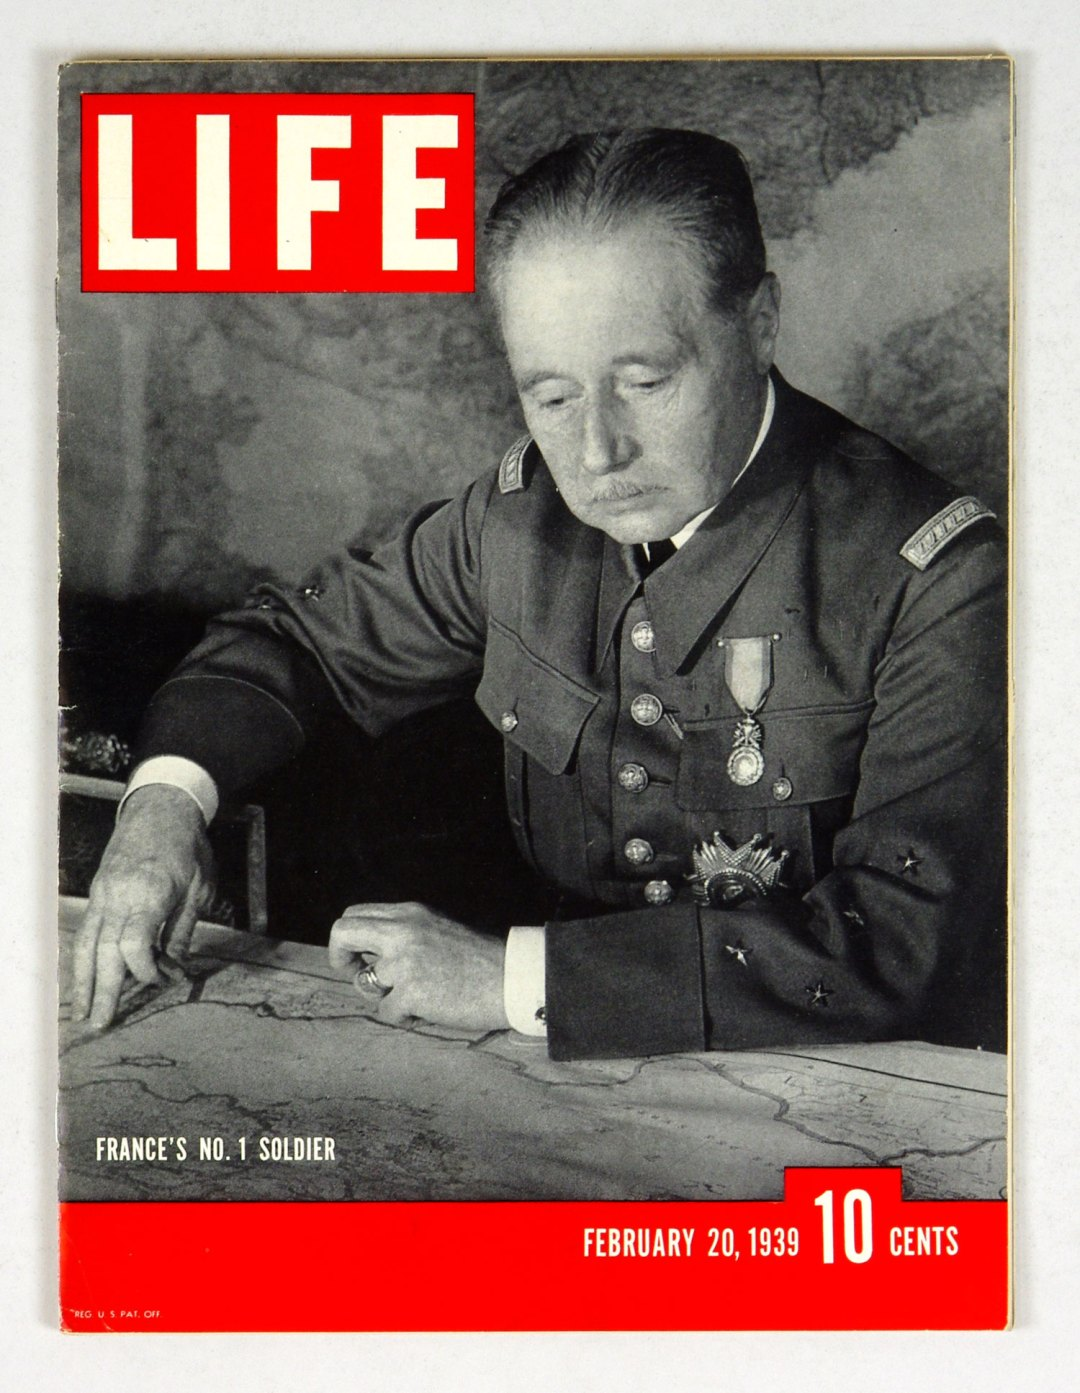 LIFE Magazine 1939 February 20 France's No. 1 Soldier